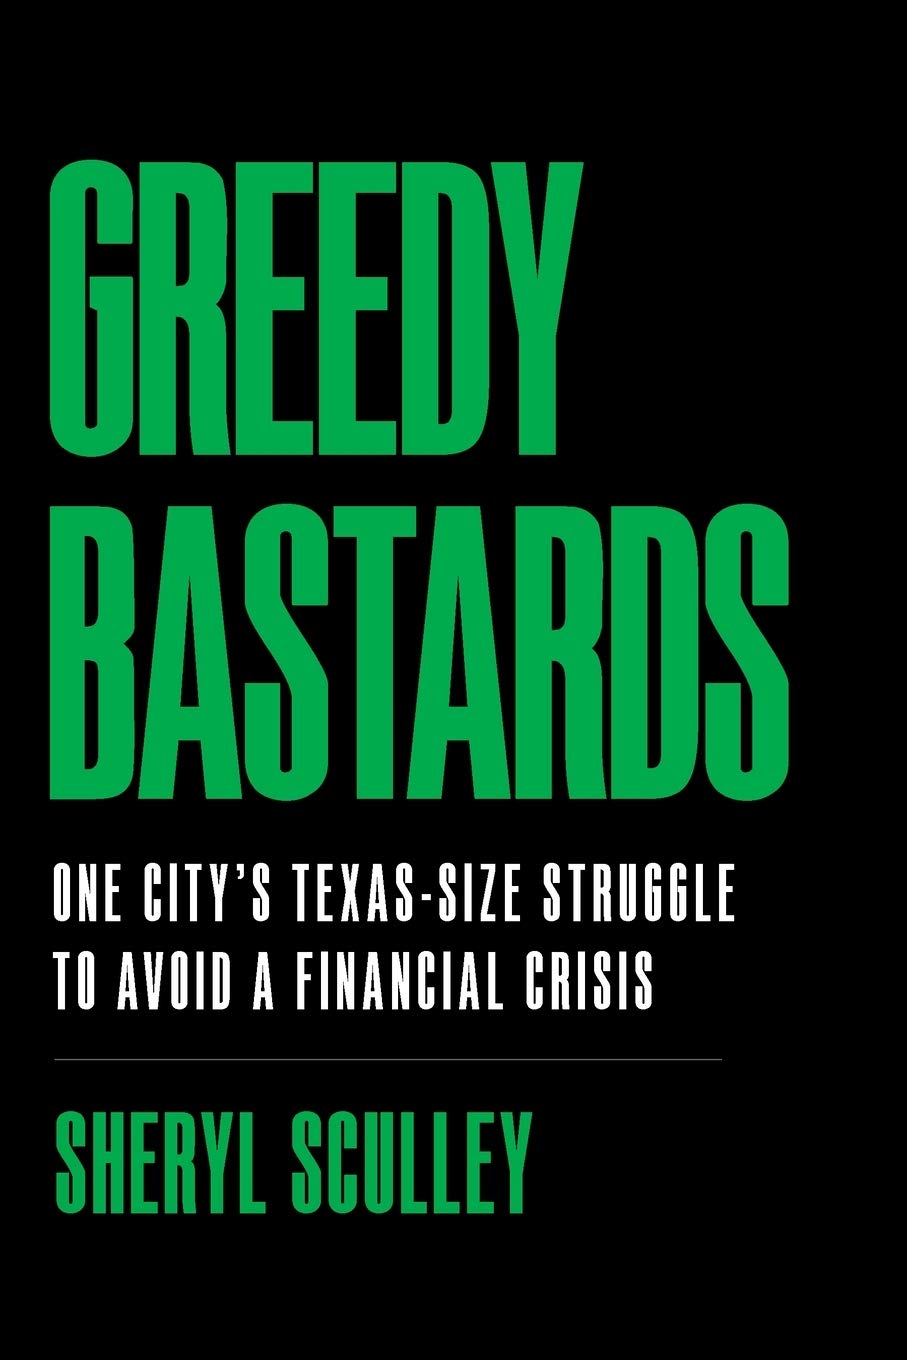 Image OfGreedy Bastards: One City's Texas-Size Struggle To Avoid A Financial Crisis